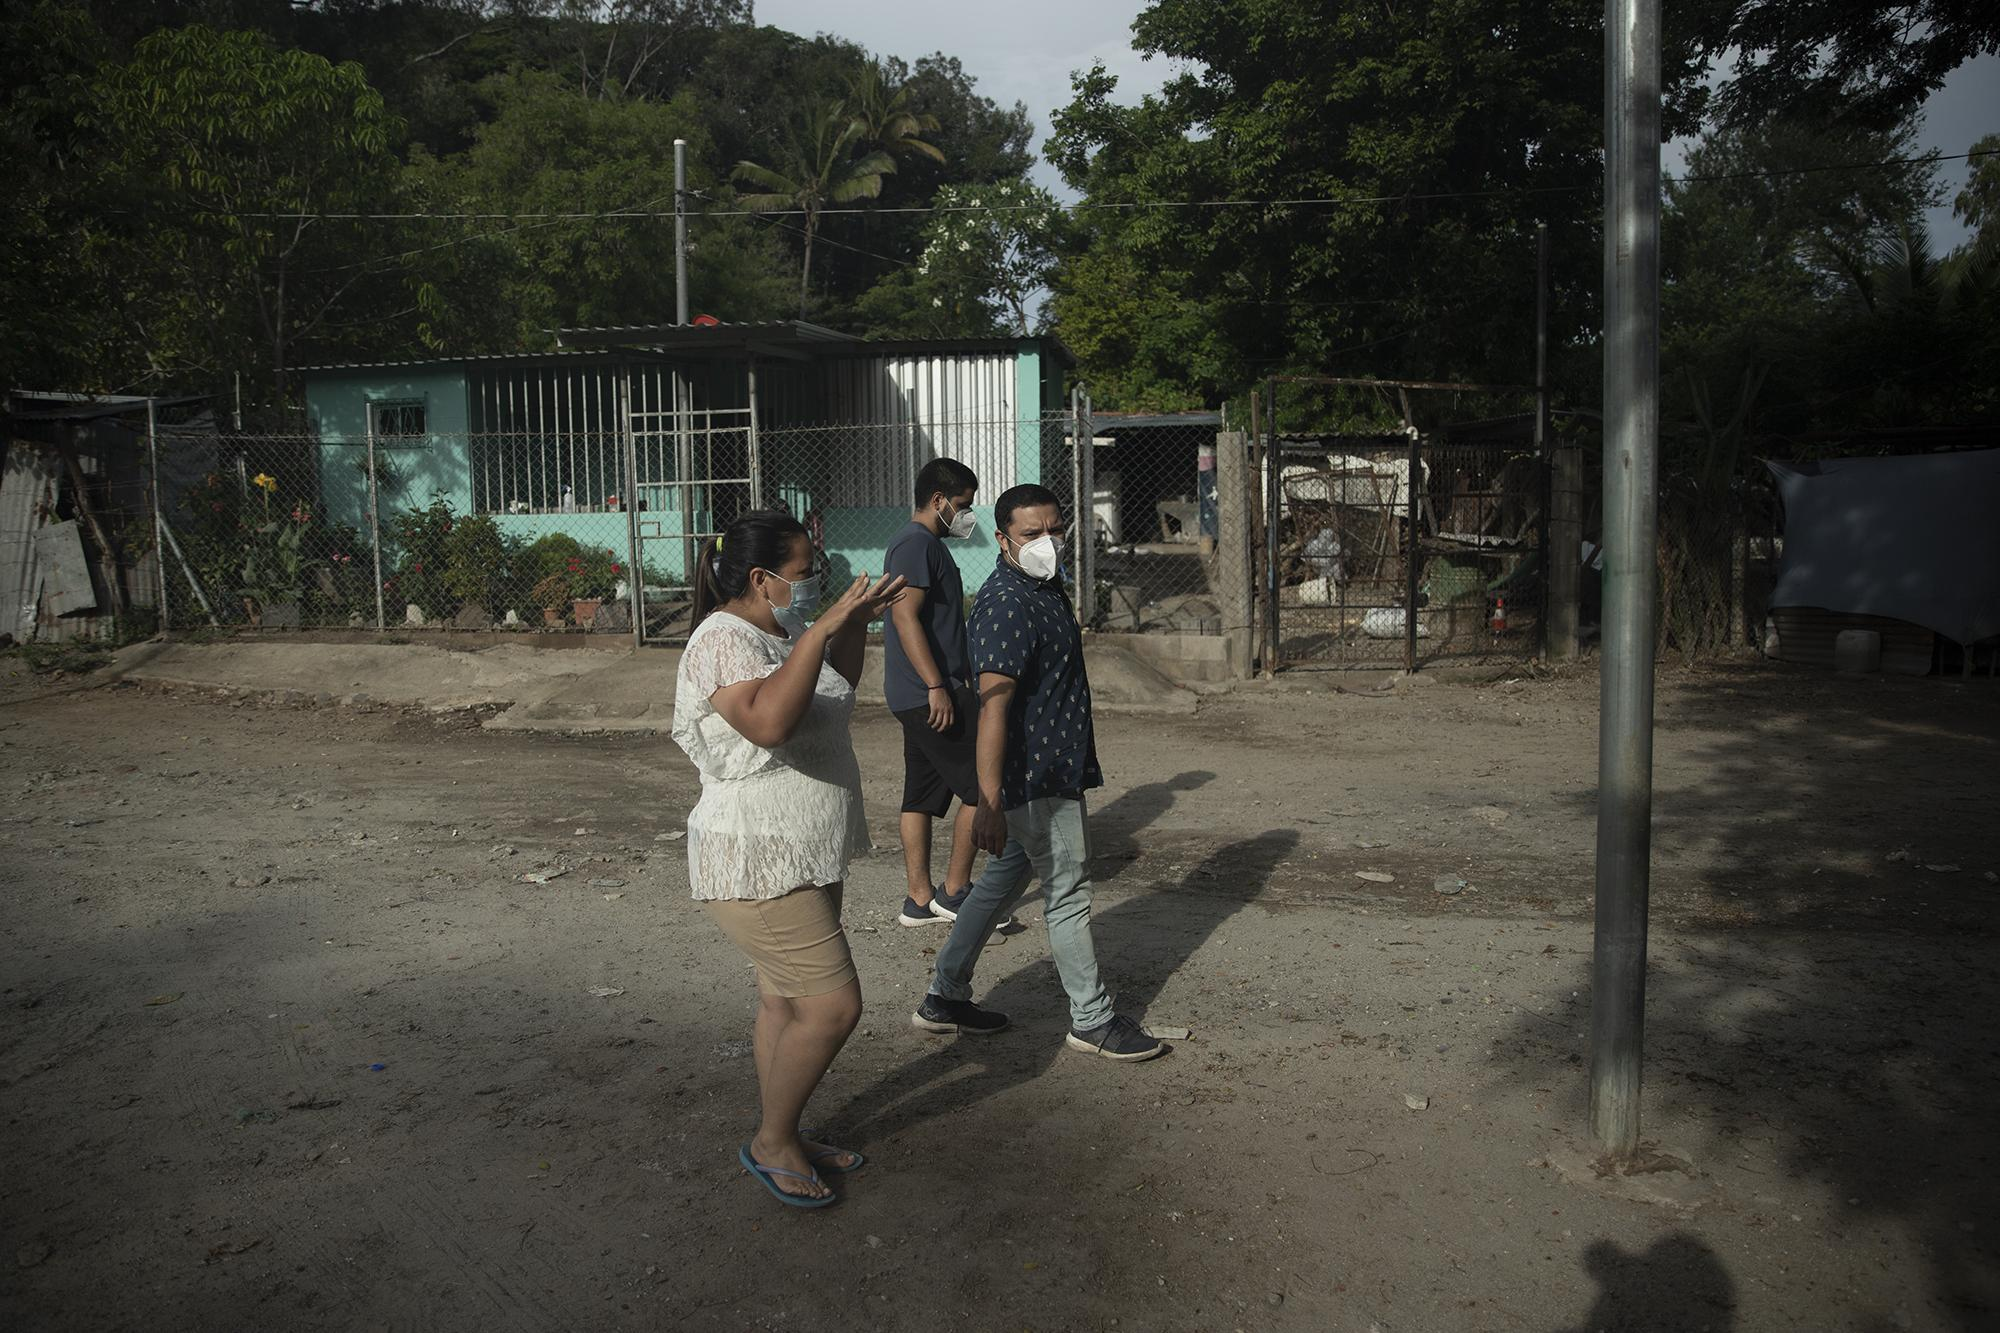 Maribel López walks with Dino Safie and Héctor Silva along the streets of Changallo, Ilopango. As a social worker with the Ilopango mayor's office, she coordinates relief for affected families in Changallo. Photo: Carlos Barrera/El Faro